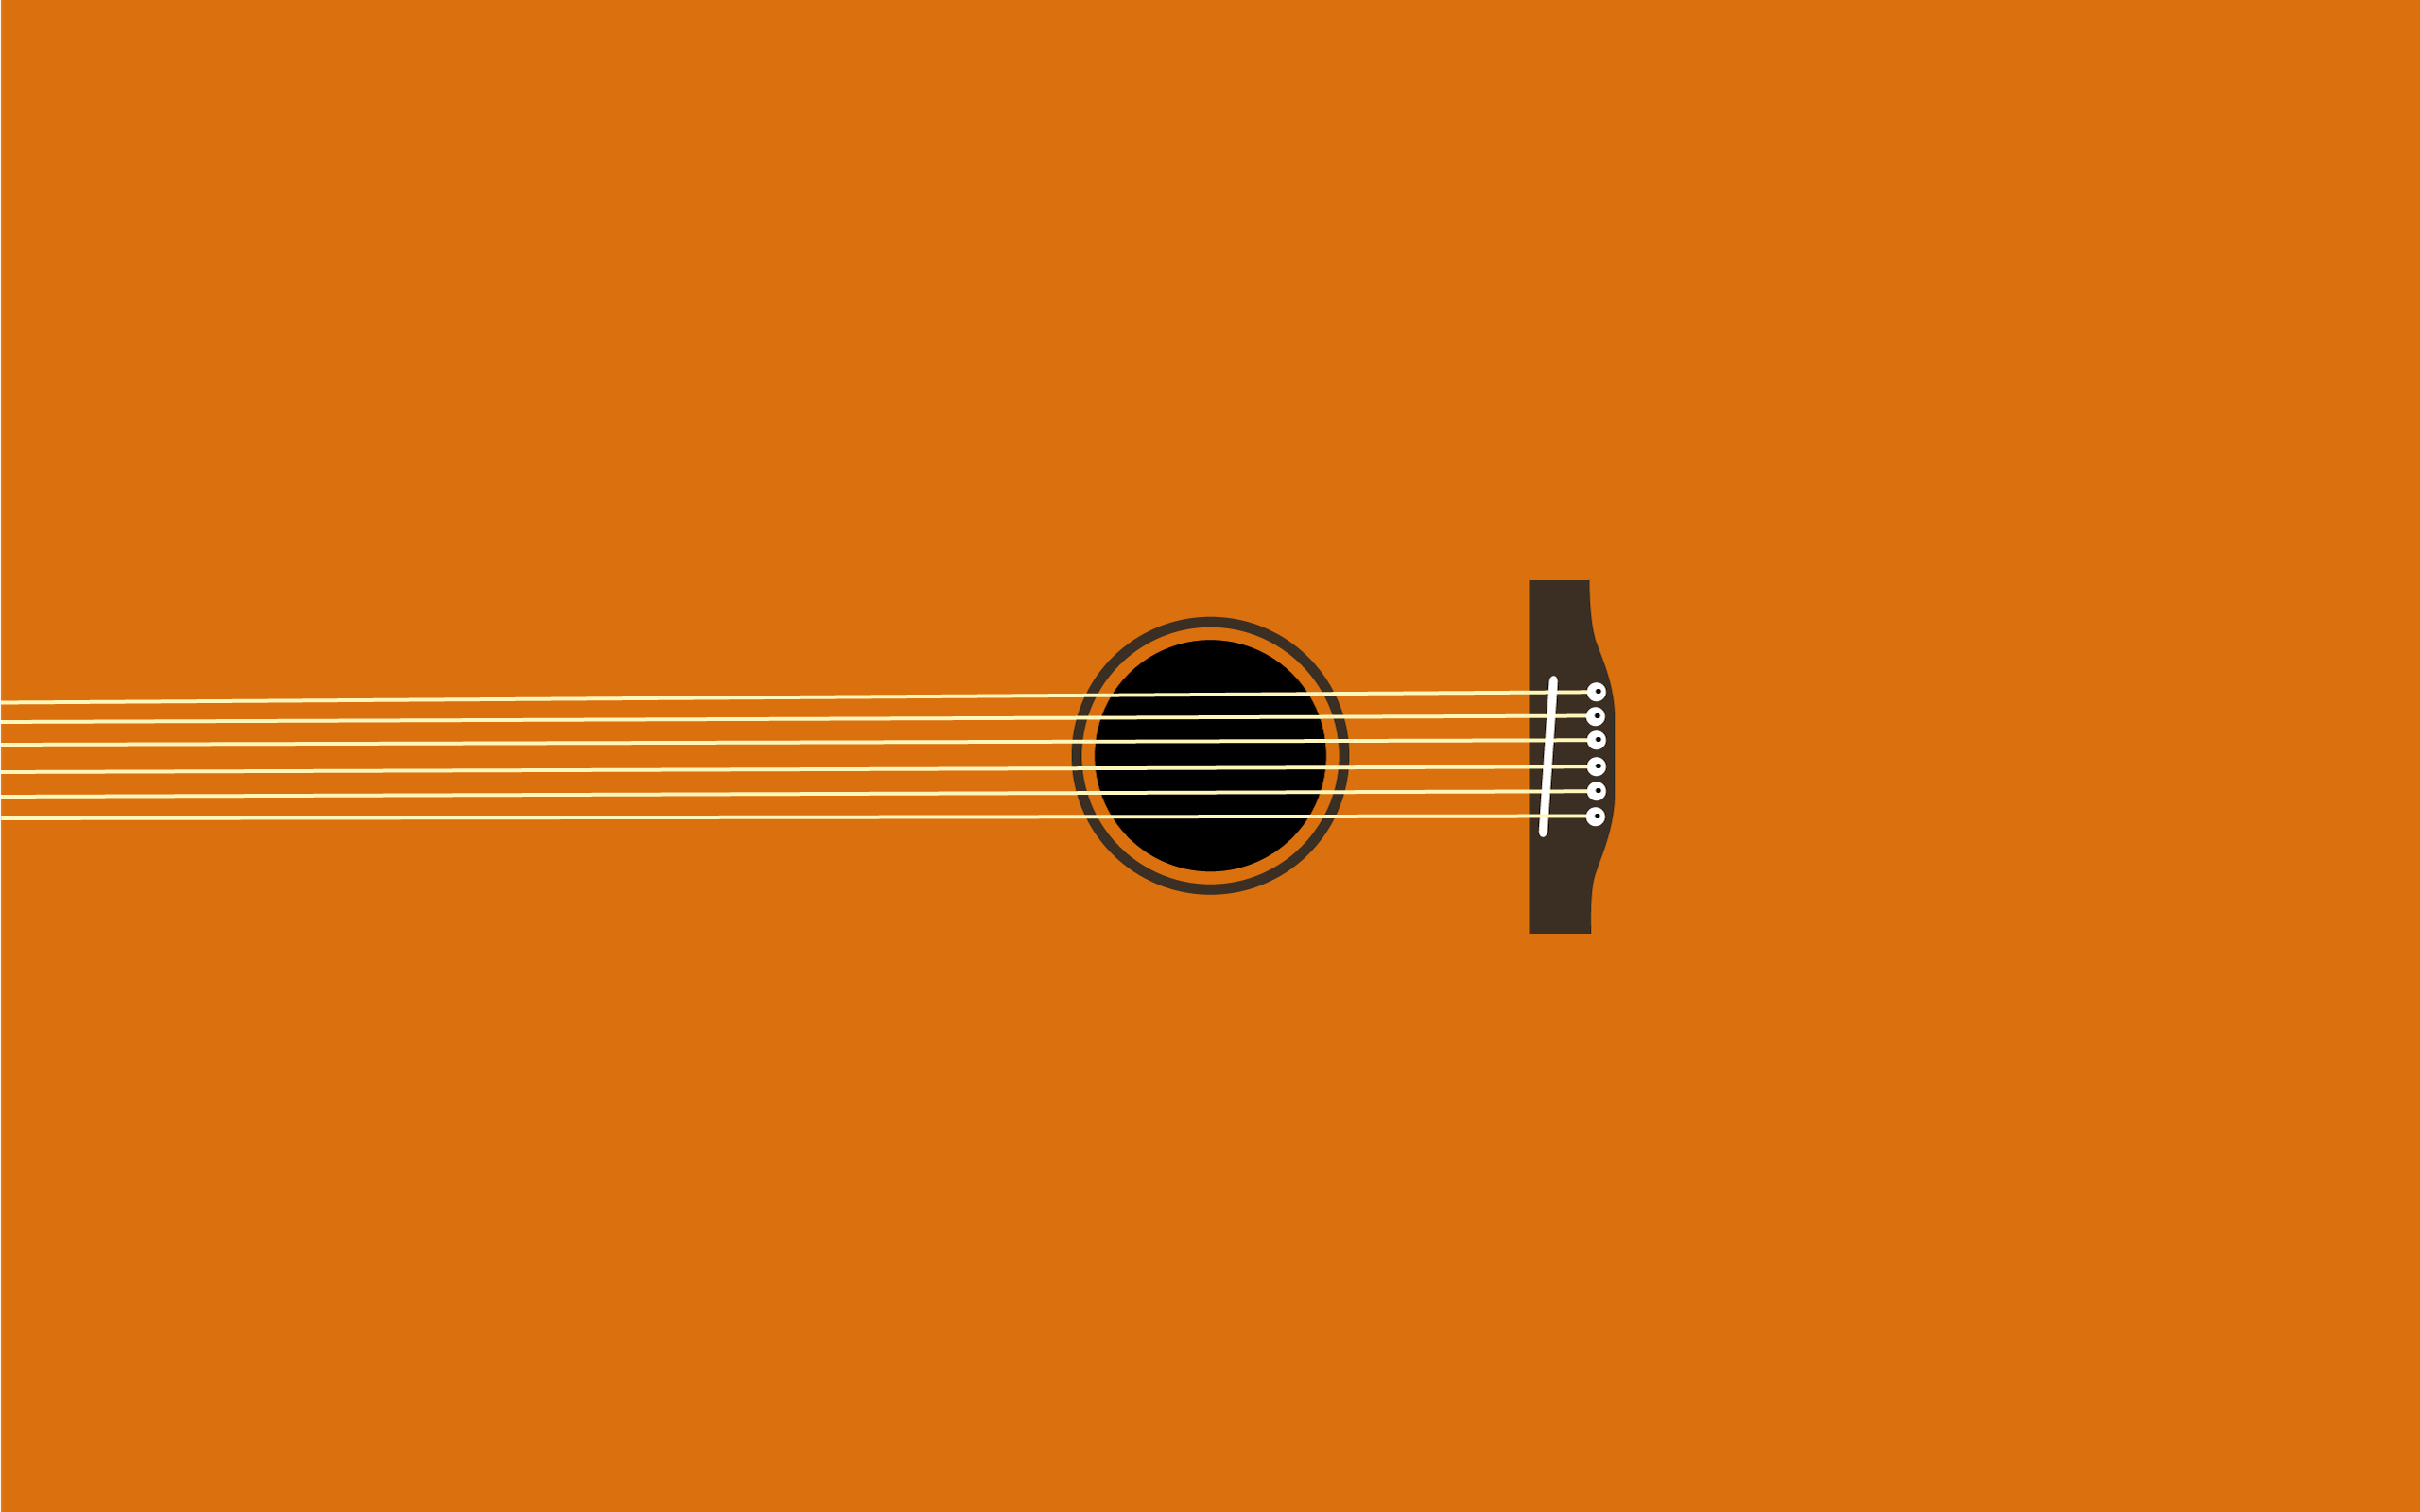 guitar hd wallpaper background 2297